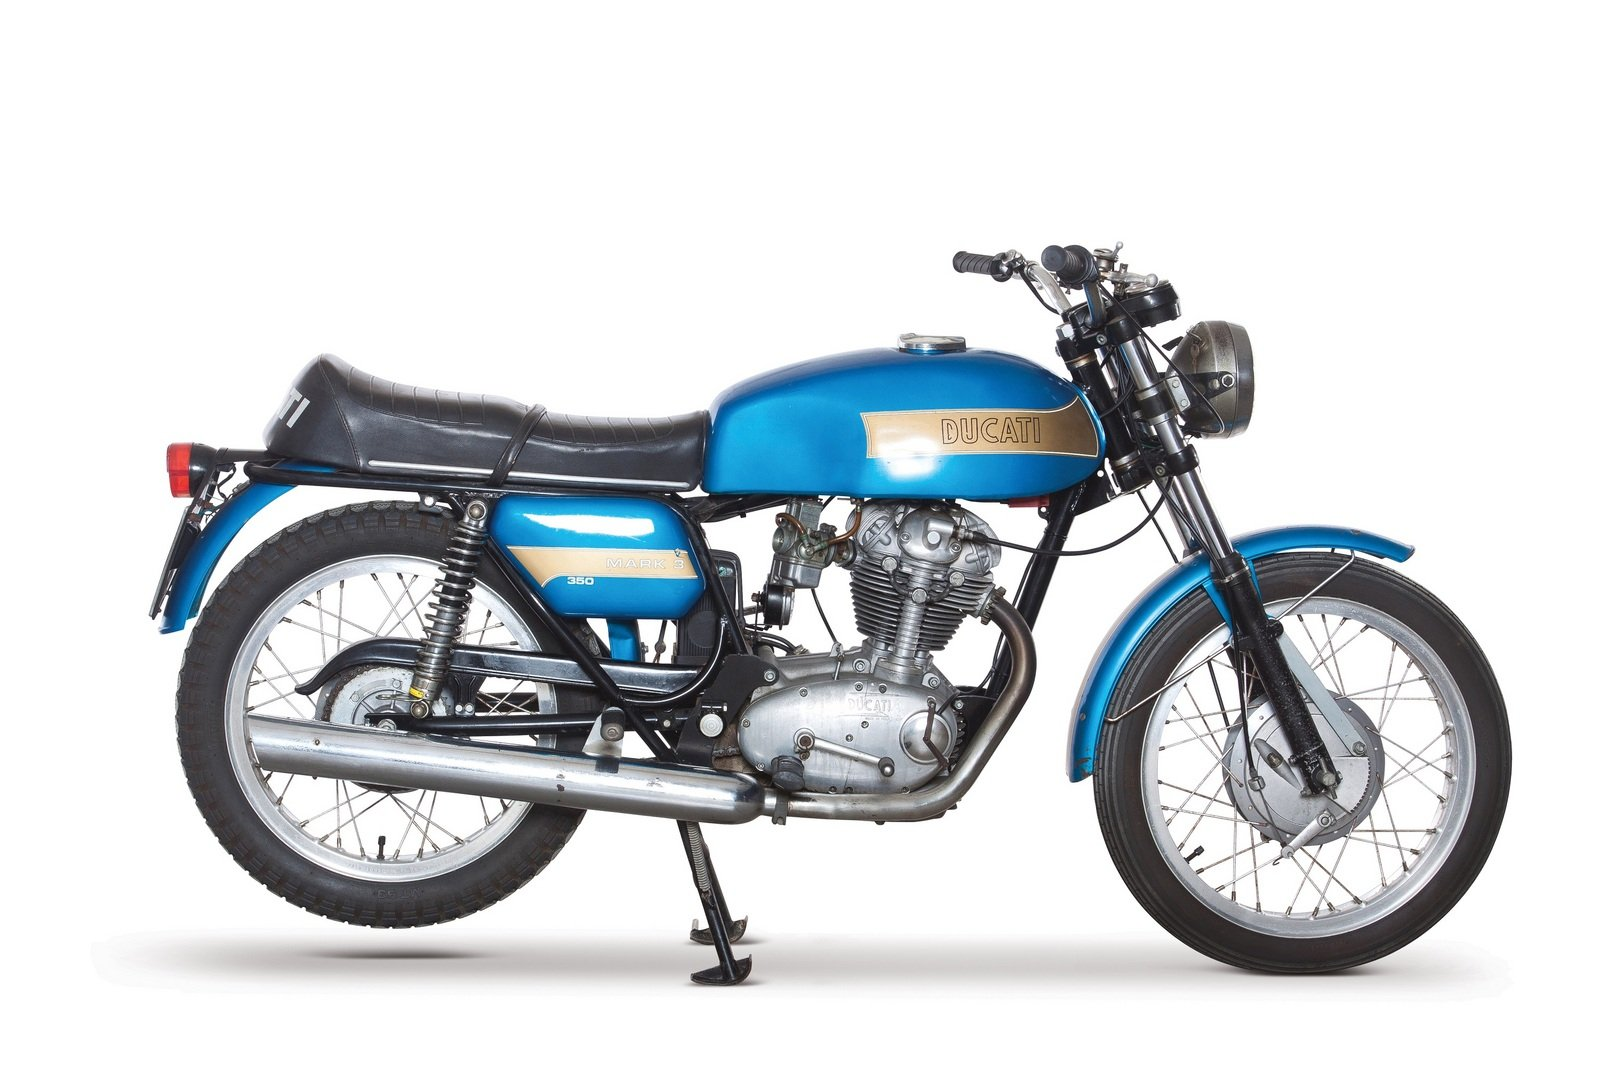 1970 Ducati 250 Mark 3 Picture 453084 Motorcycle